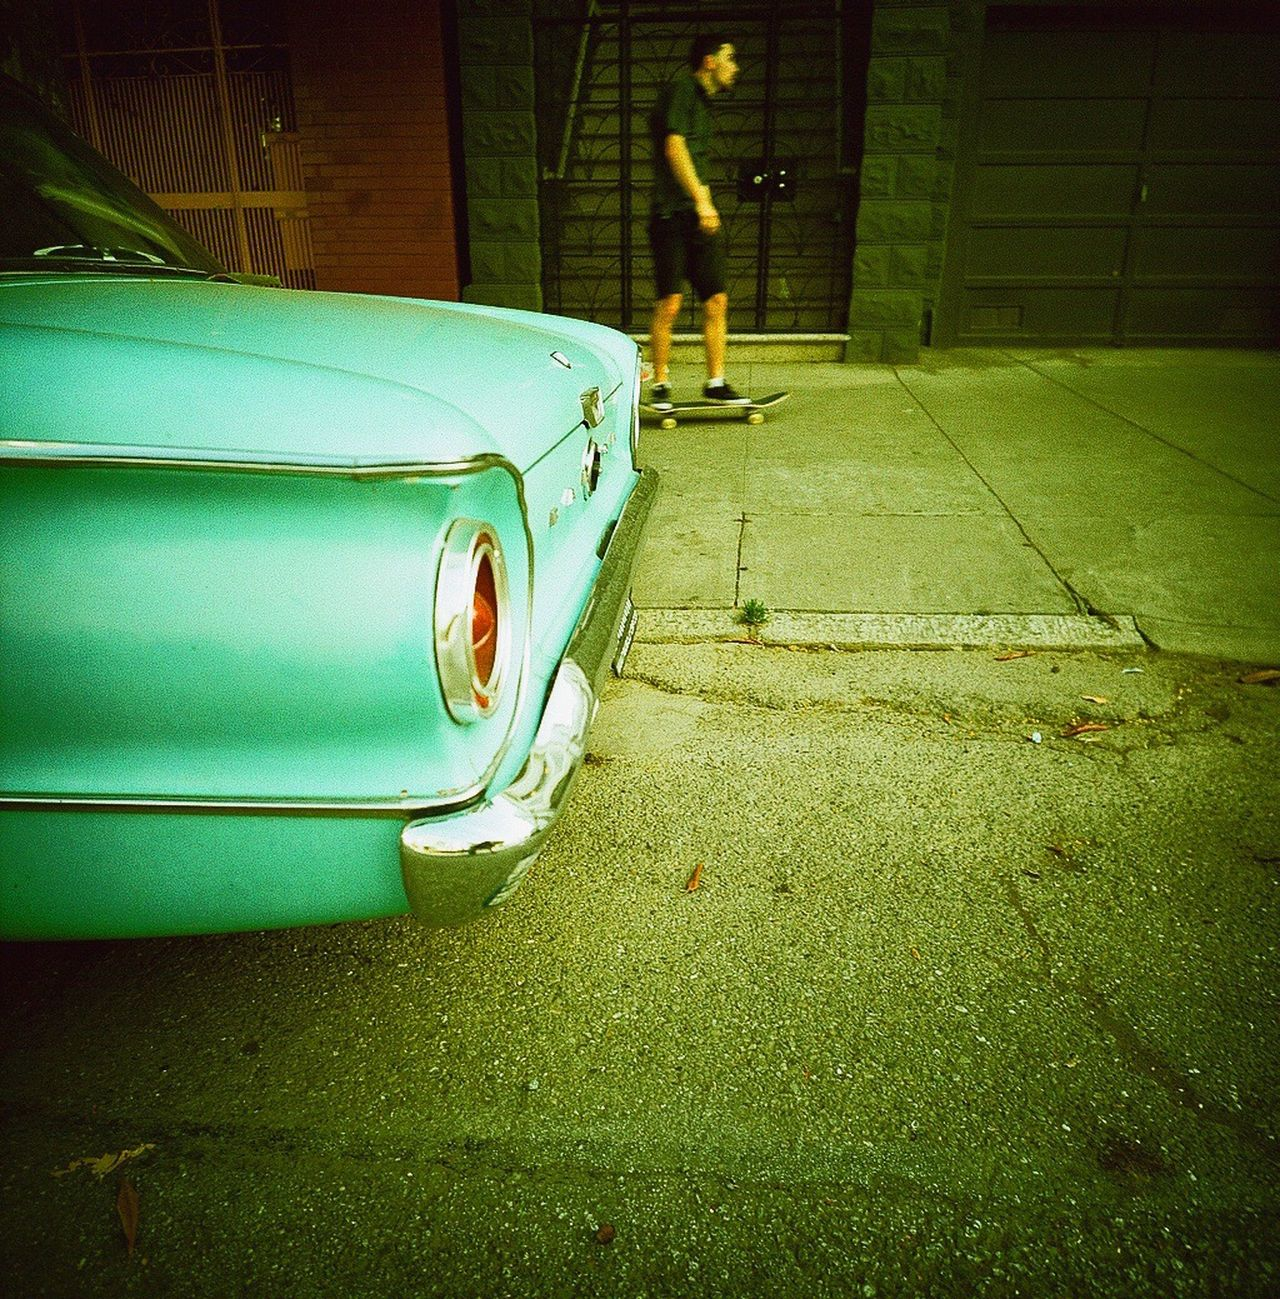 Car Koduckgirl Parked Film Land Vehicle Mode Of Transport Film Photography Classic Car Outdoors Close-up Koduckgirl